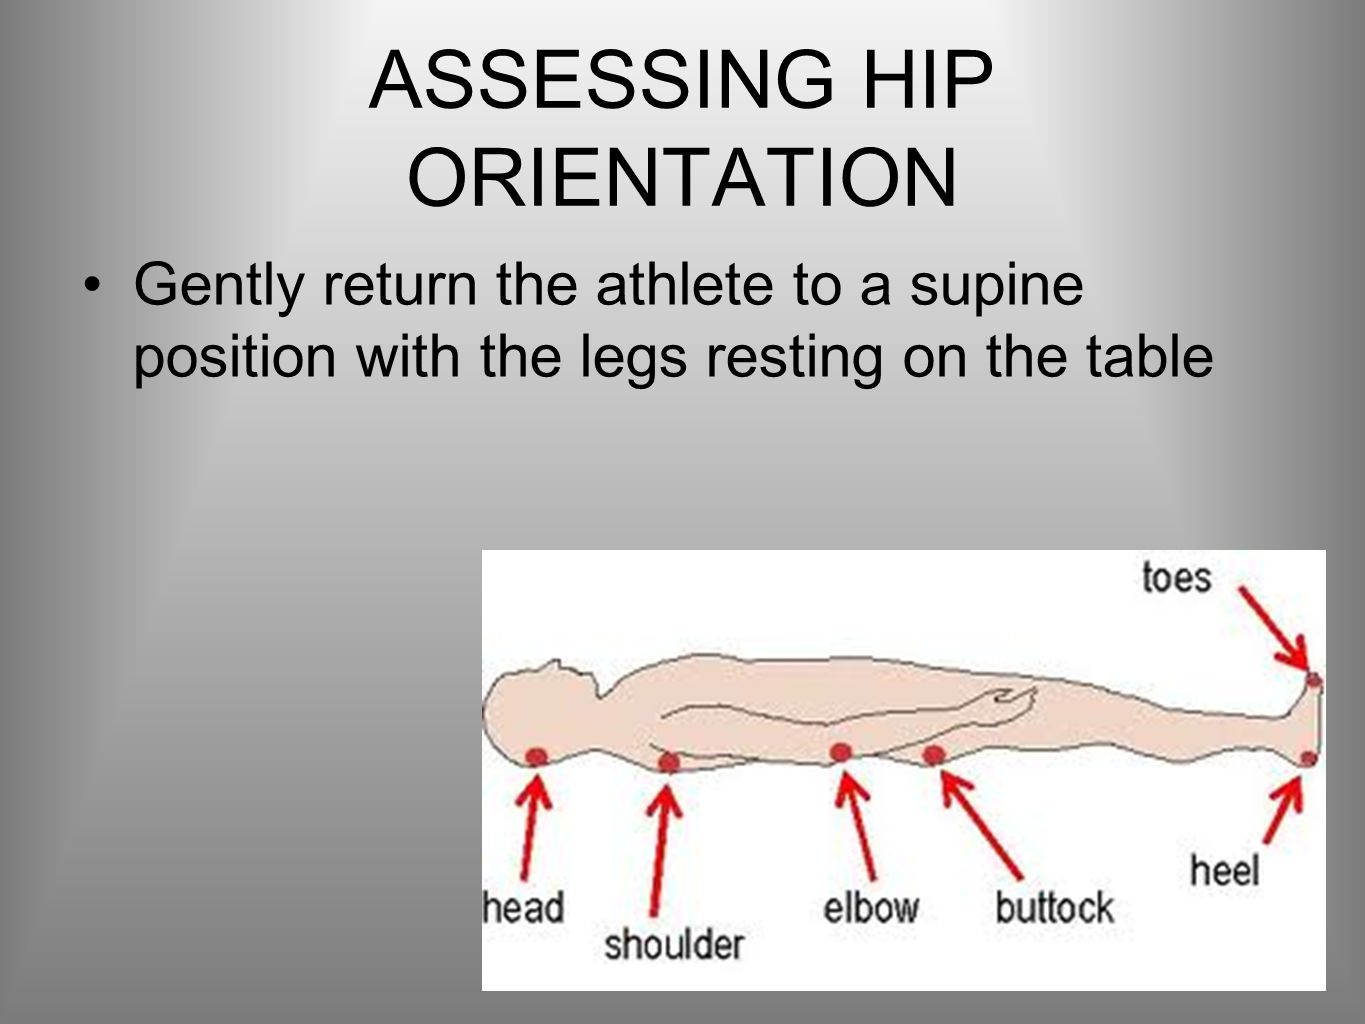 ASSESSING HIP ORIENTATION Gently return the athlete to a supine position with the legs resting on the table